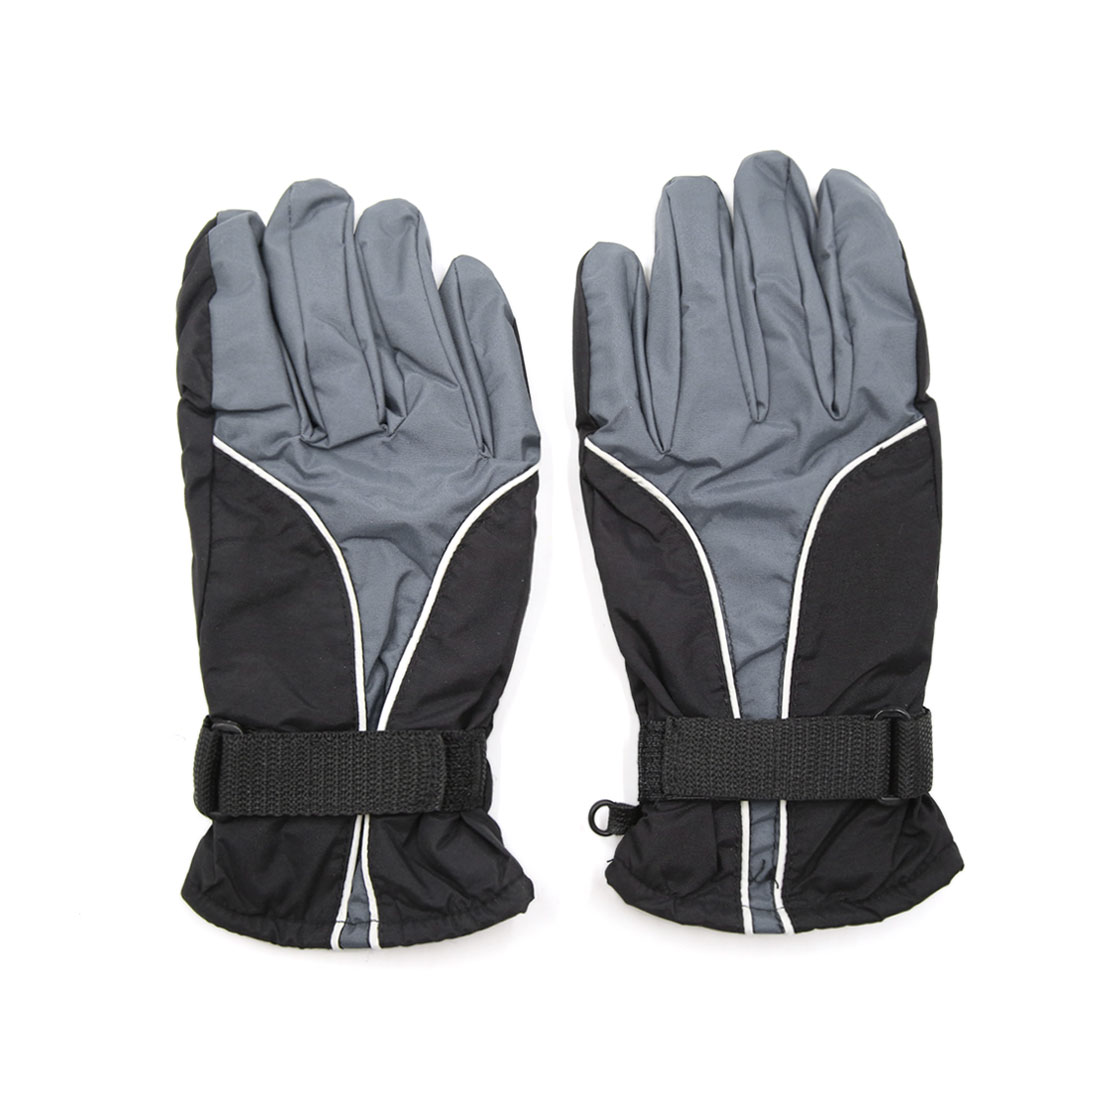 2pcs Gray Soft Cotton Lined Full Finger Motorcycle Loop Fastener Outdoor Gloves